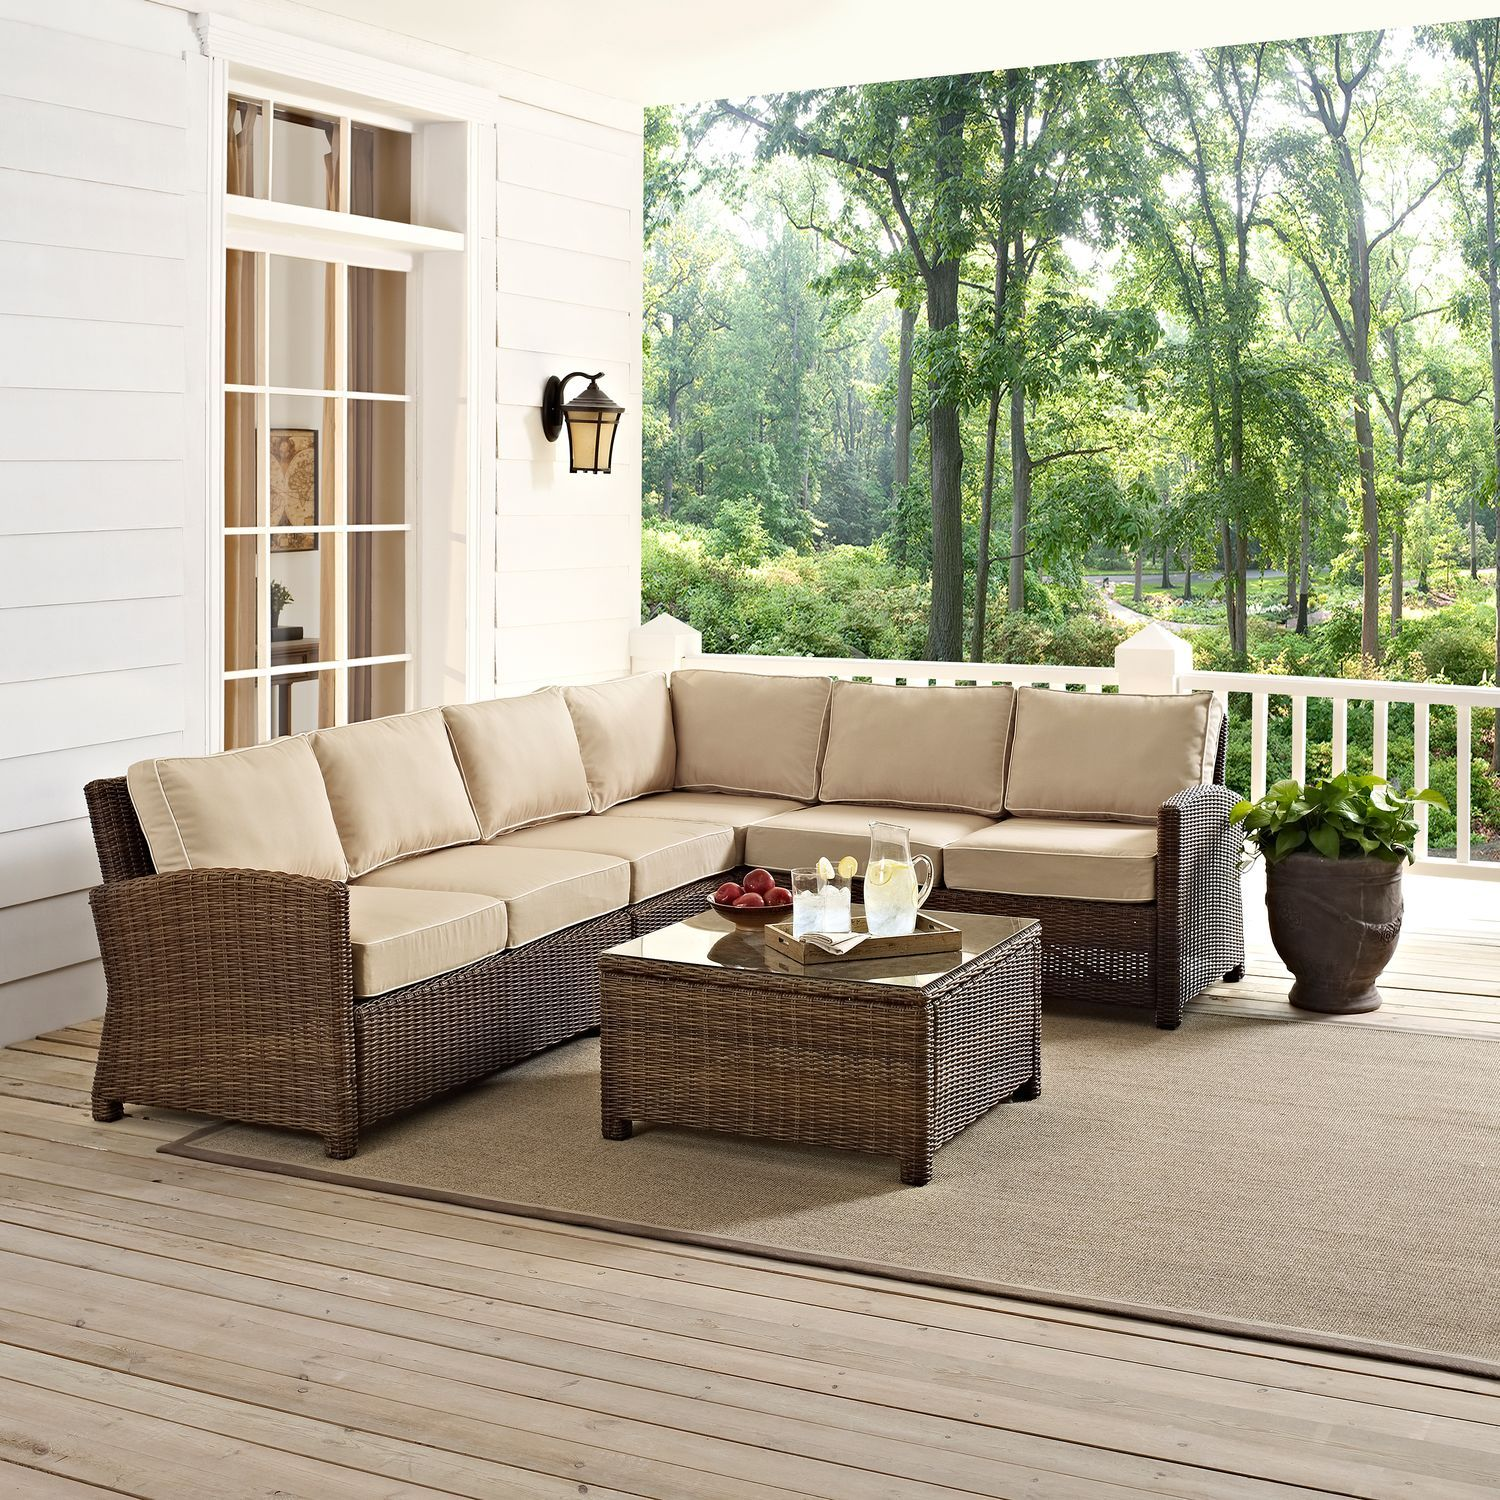 Patio Furniture Destin Fl: Destin 4-Piece Outdoor Sectional And Coffee Table Set